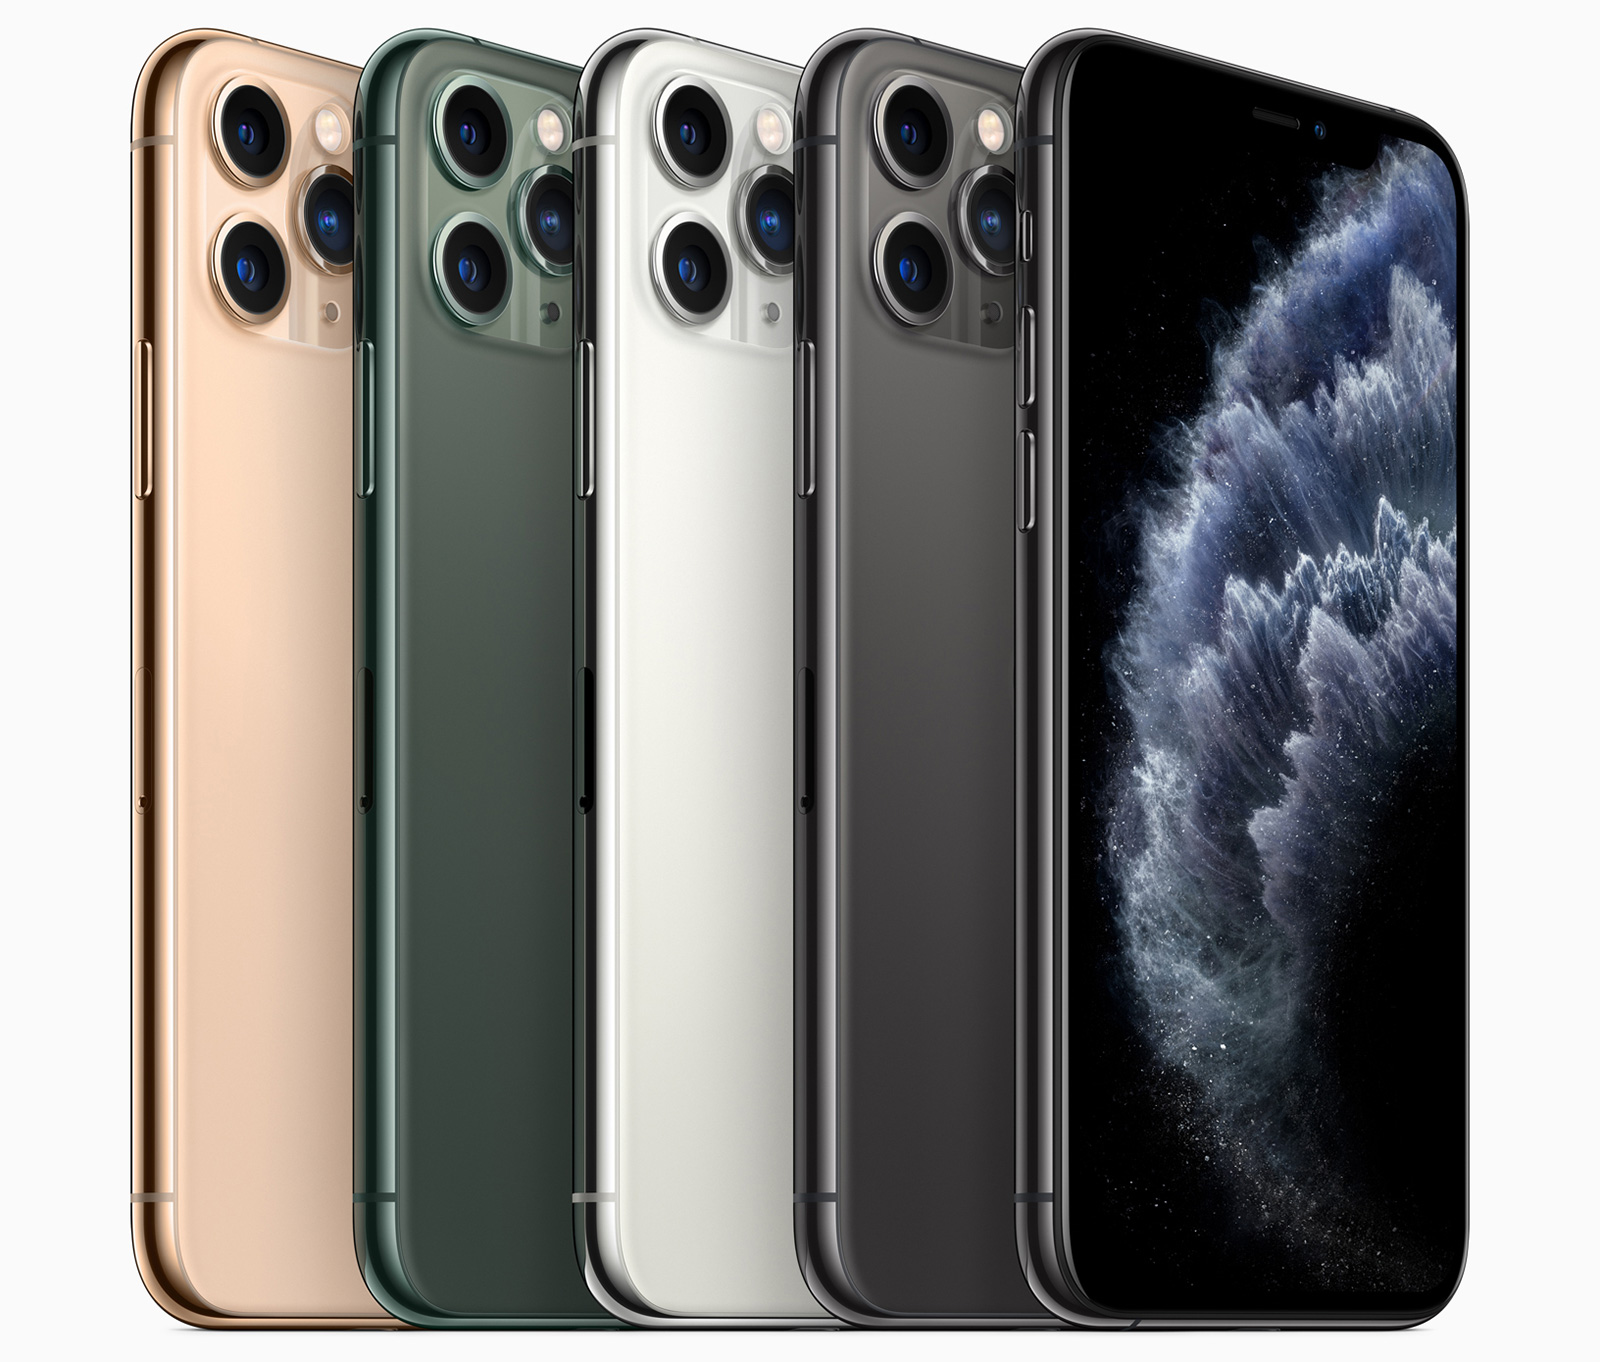 iPhone 11 Pro and Pro Max introduced with three rear cameras